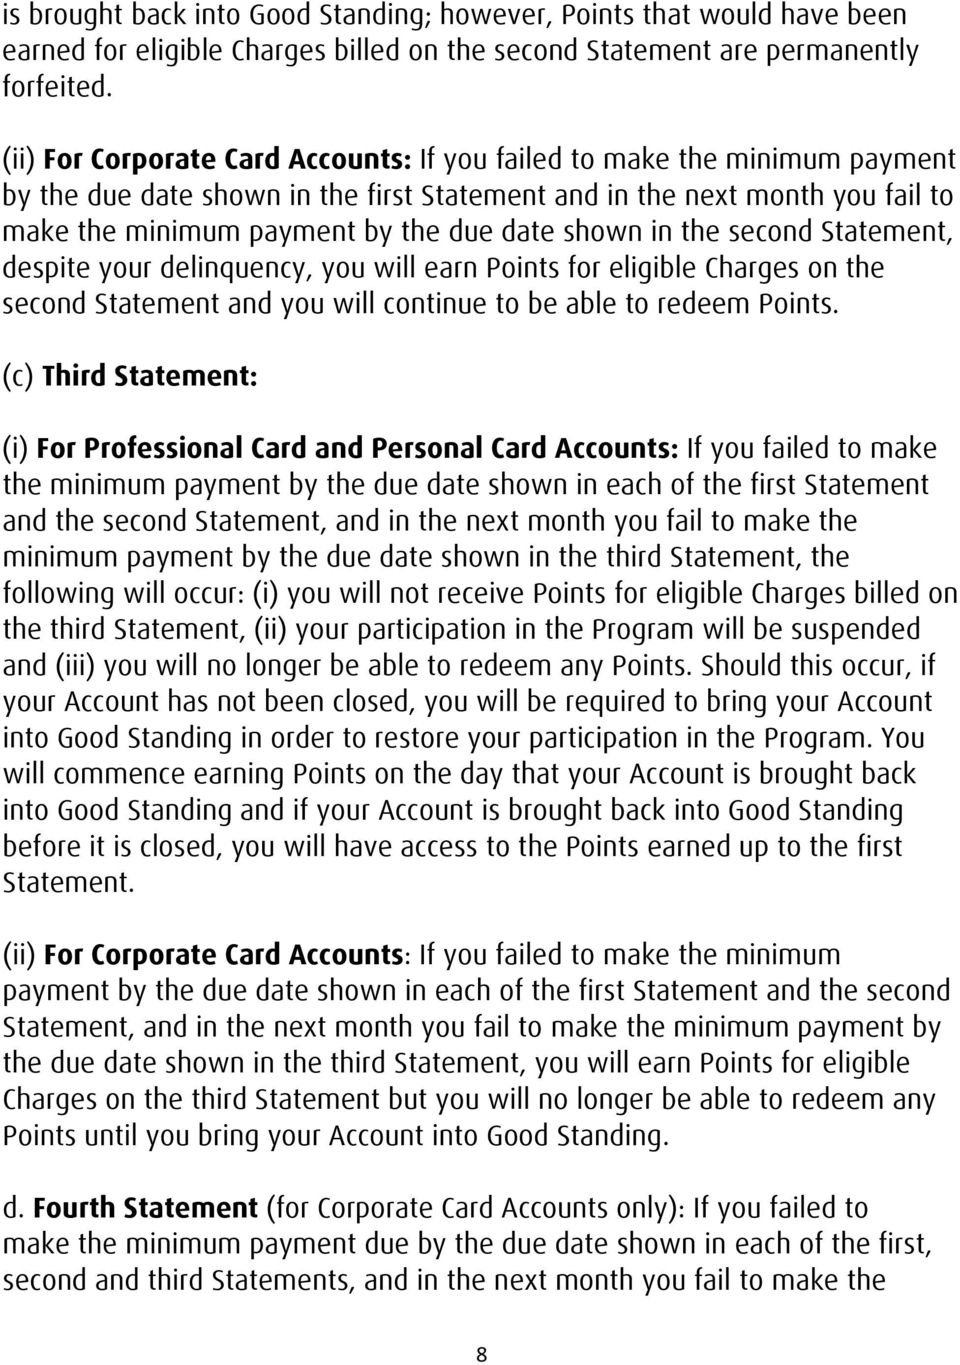 shown in the second Statement, despite your delinquency, you will earn Points for eligible Charges on the second Statement and you will continue to be able to redeem Points.